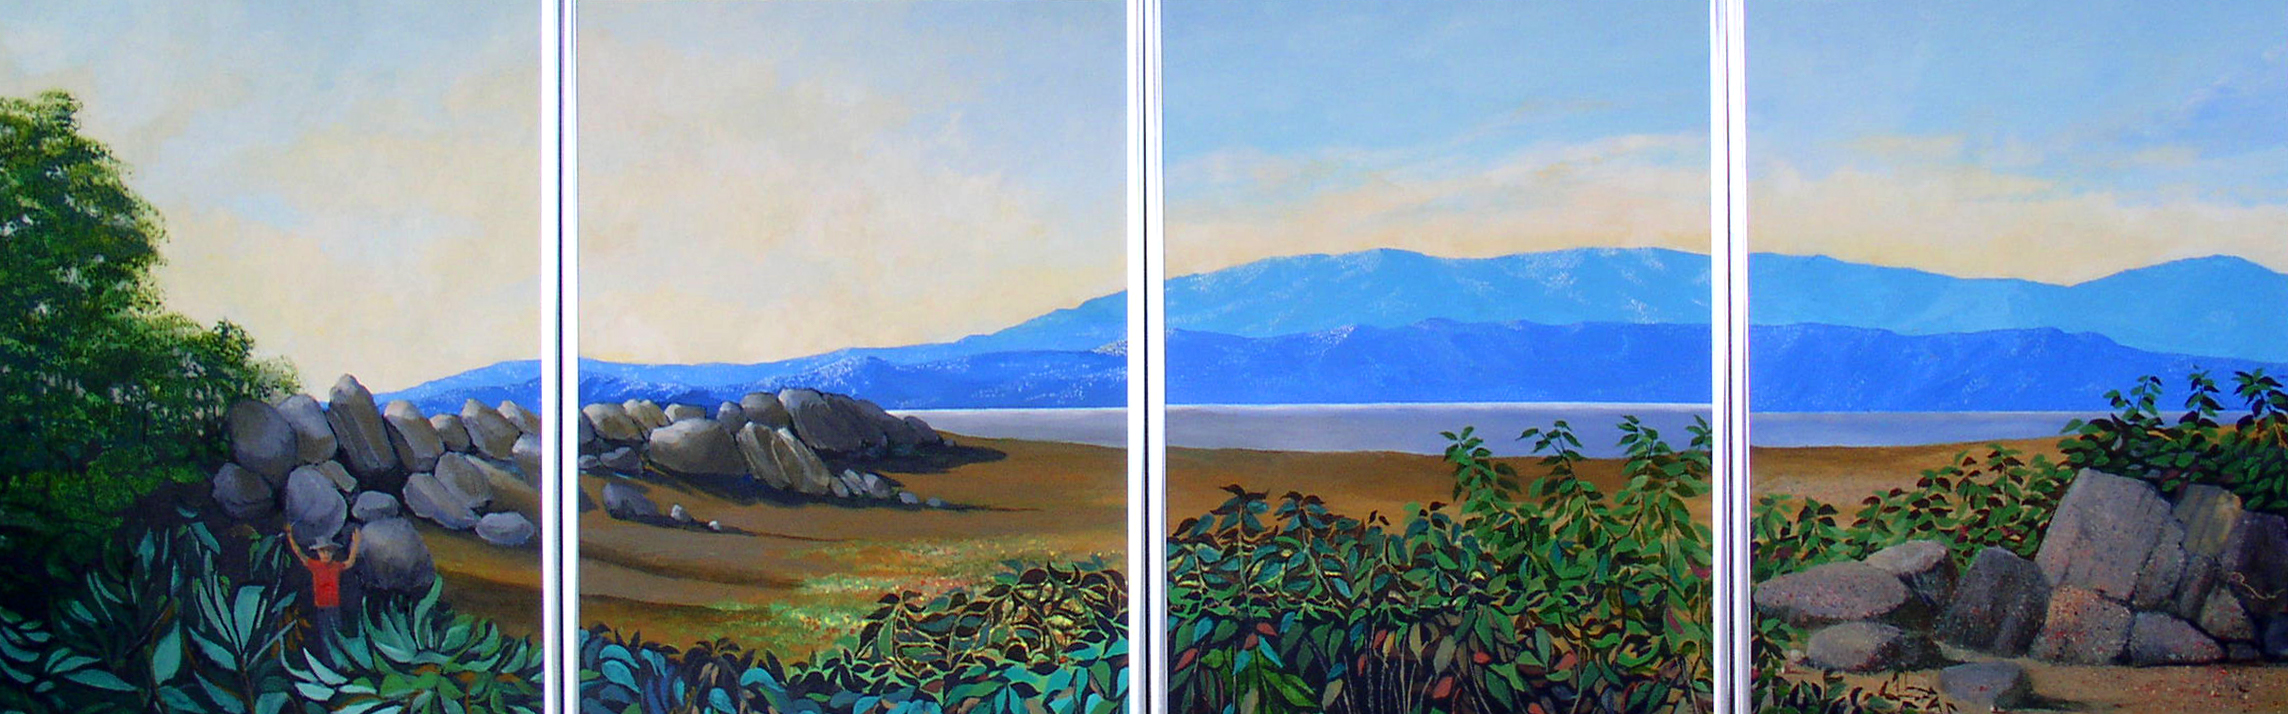 "California Vista Series, 1993, acrylic on four 16"" x 20"" canvas panels"